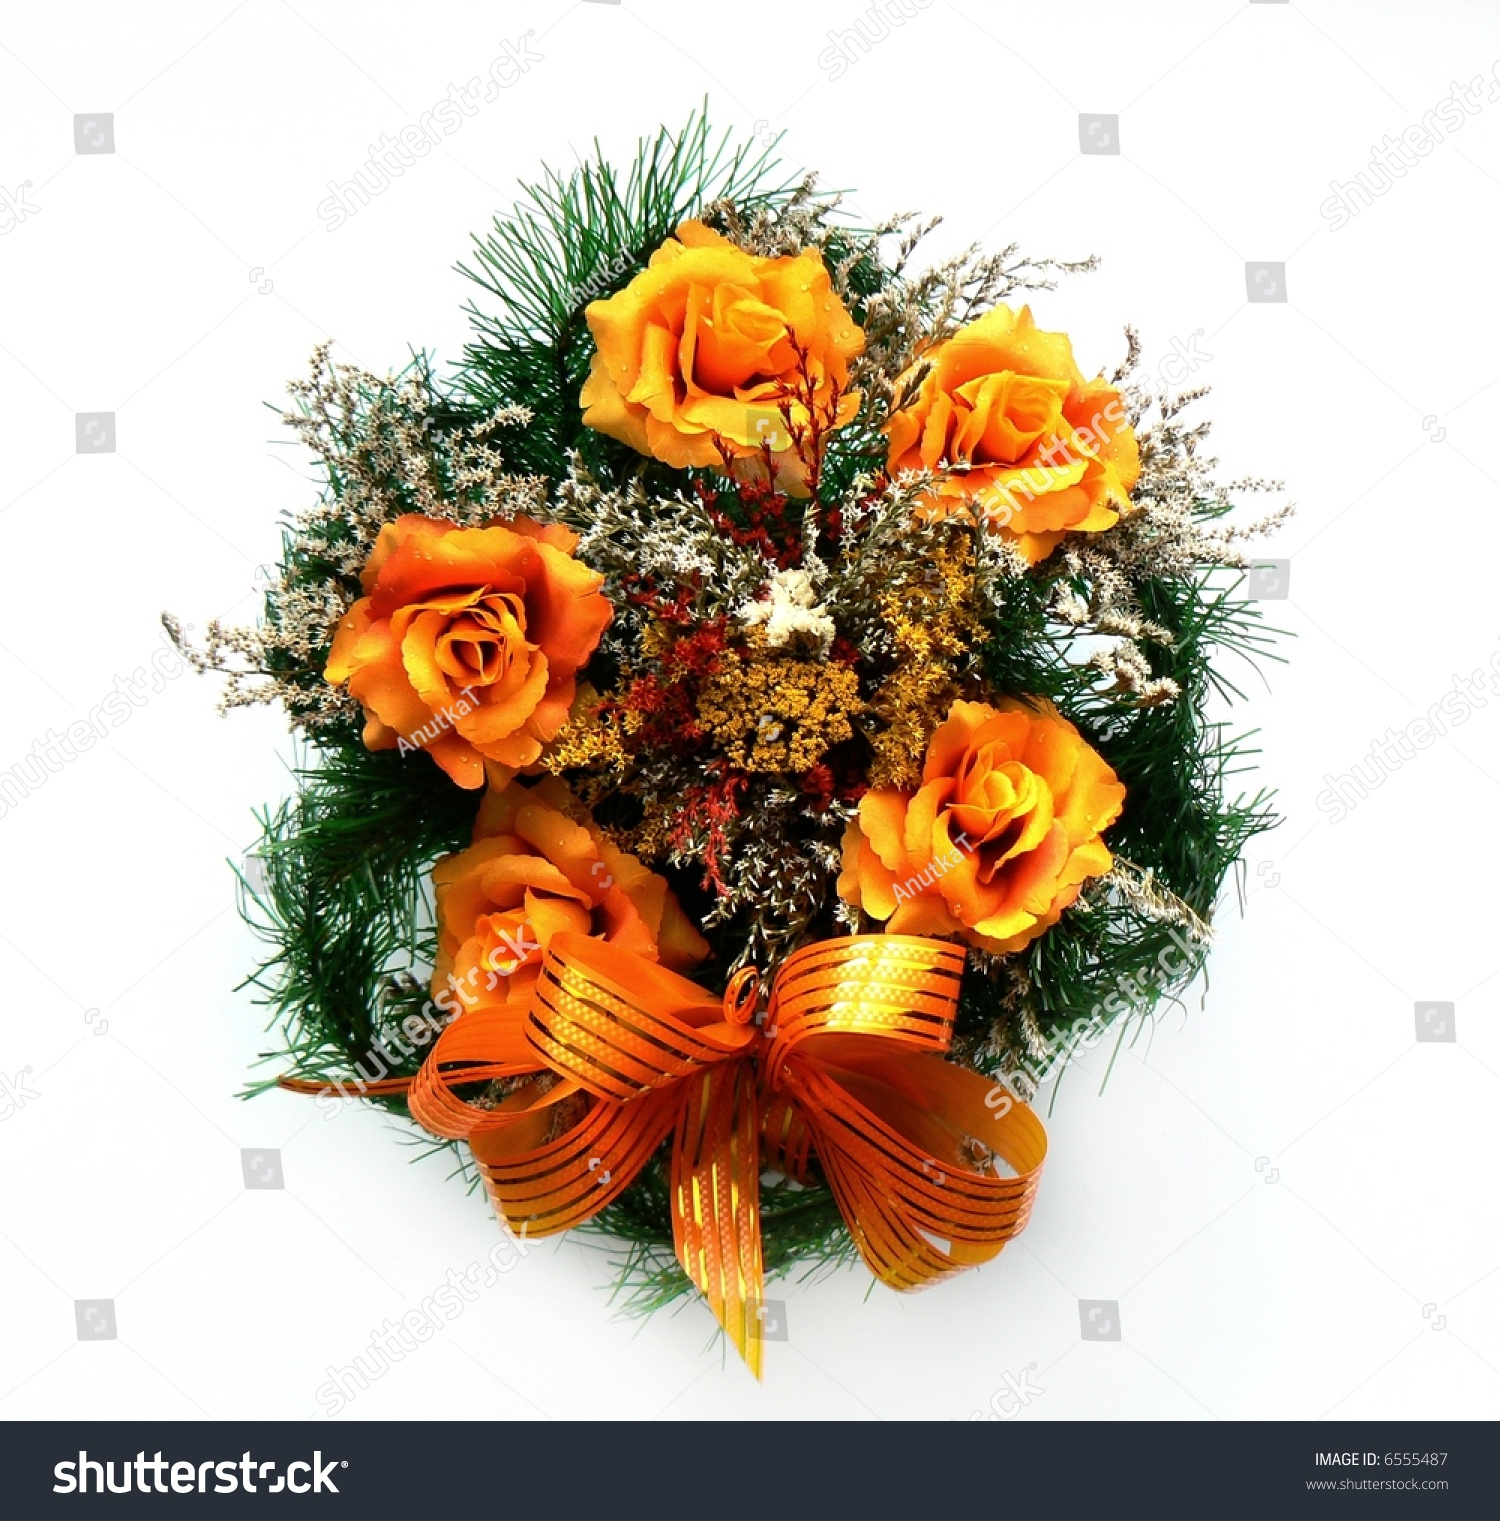 Grave Decoration Wreath Grave Funeral Cemetery Flowers Bunch Stock Photo 6555487